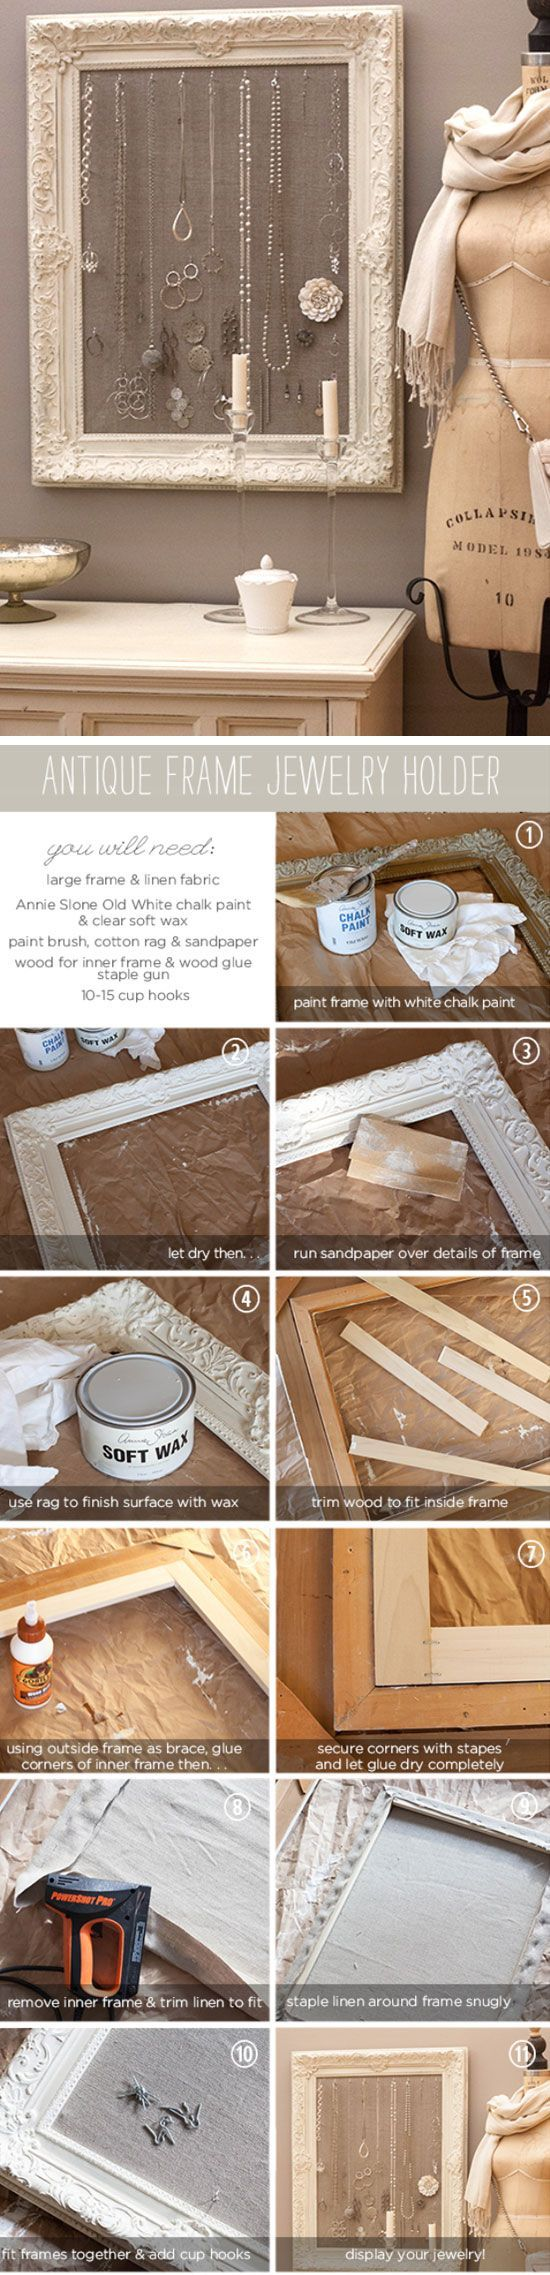 DIY Antique Frame Jewelry Holder | Click Pic for 20 Dollar Store Crafts for Home Decor Ideas for Cheap | DIY Home Decor Hacks Tips and Tricks